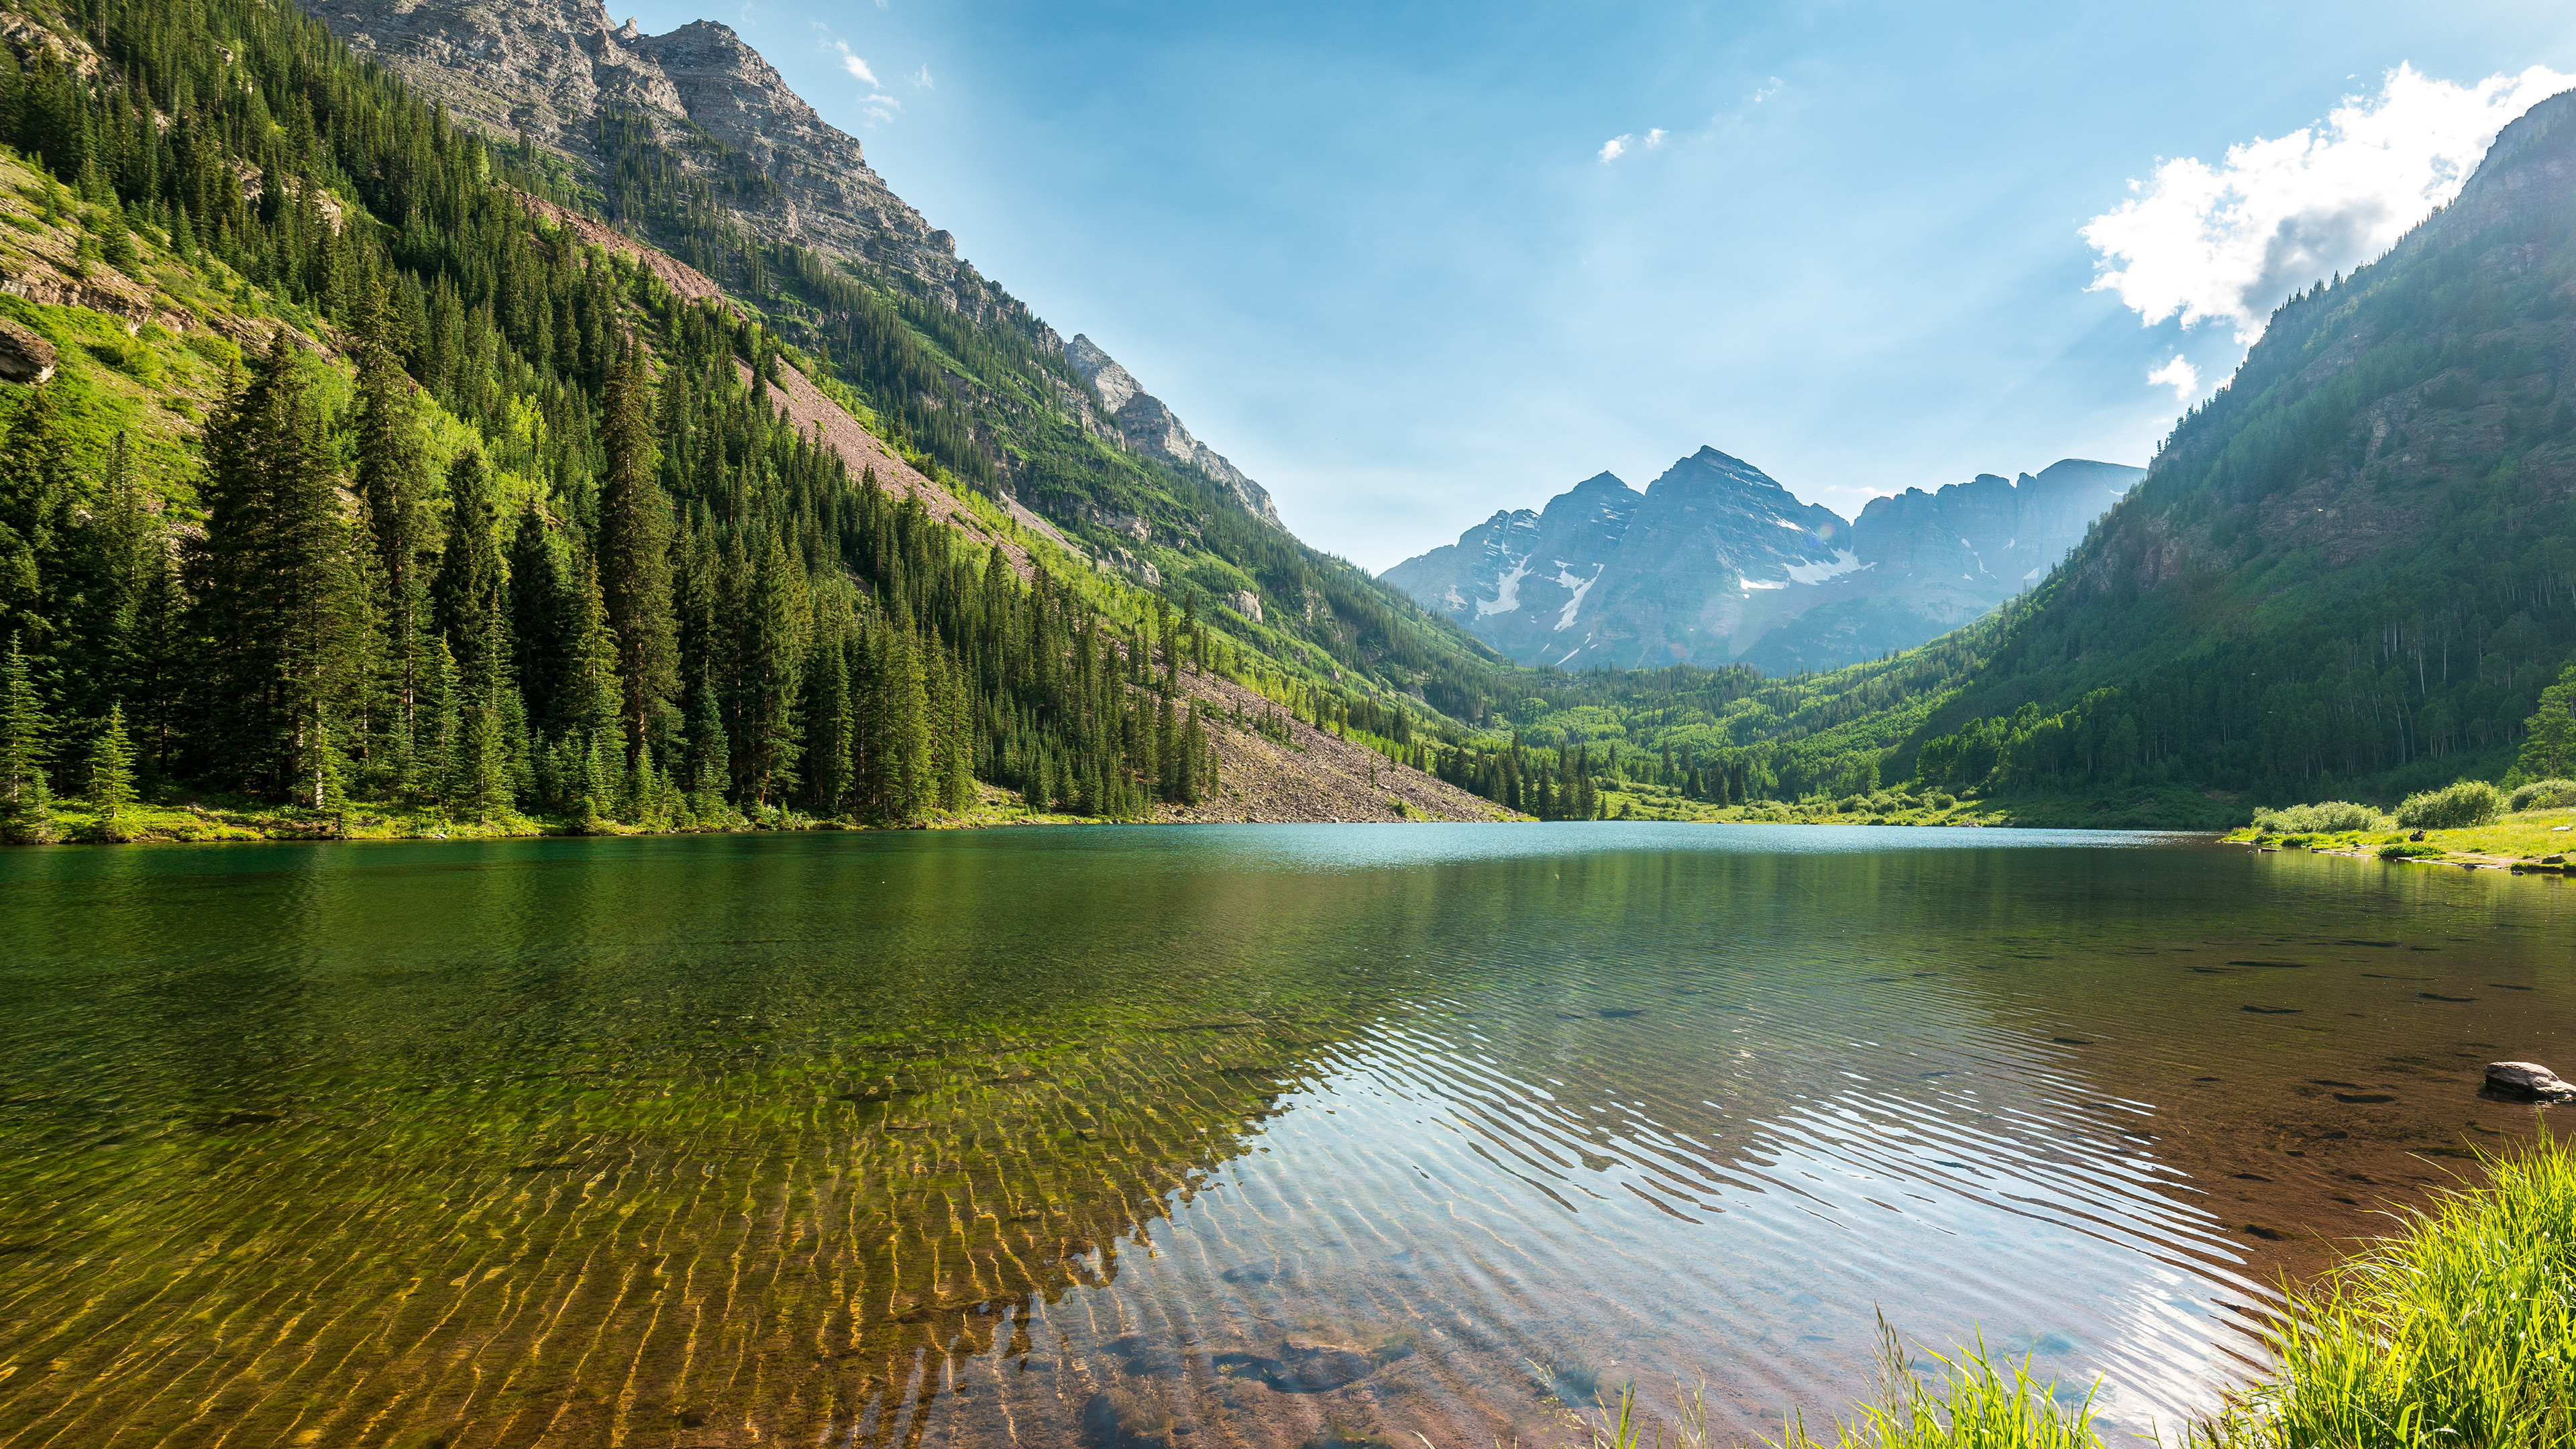 3840x2160 Nature lake and mountains 4K HD wallpaper